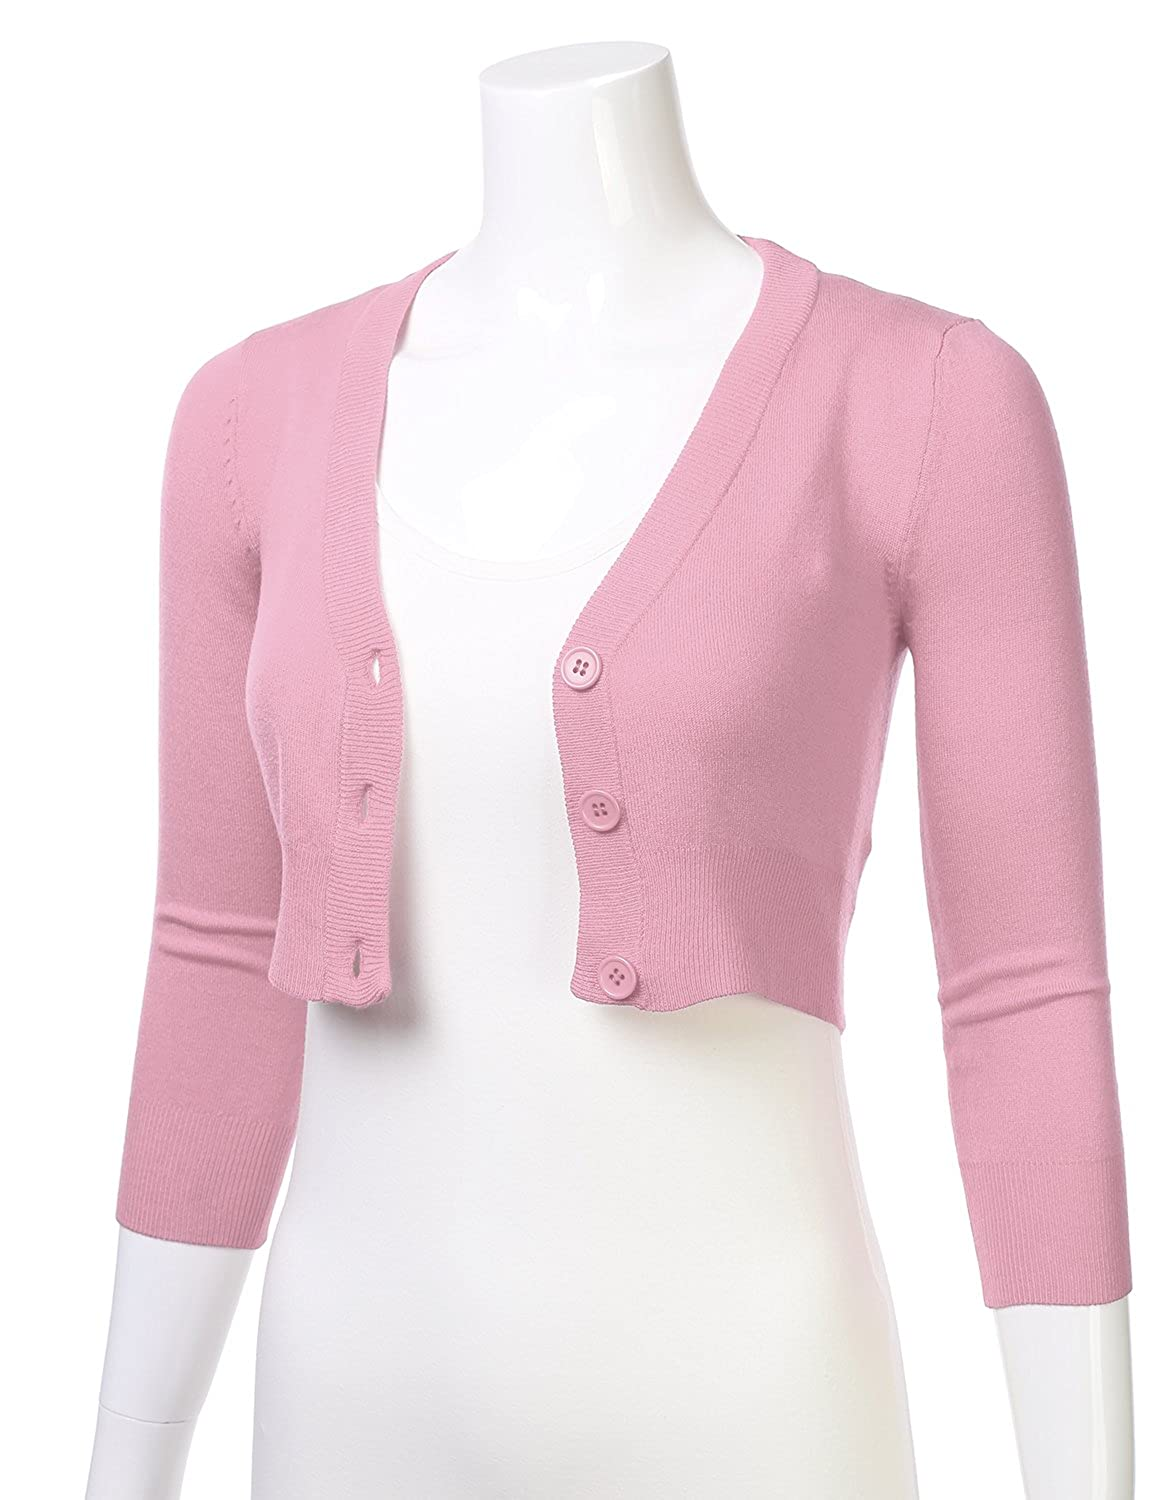 f00d8beda28bb9 S-4X FLORIA Womens Solid Button Down 3/4 Sleeve Cropped Bolero Cardigan  Sweater Sweaters